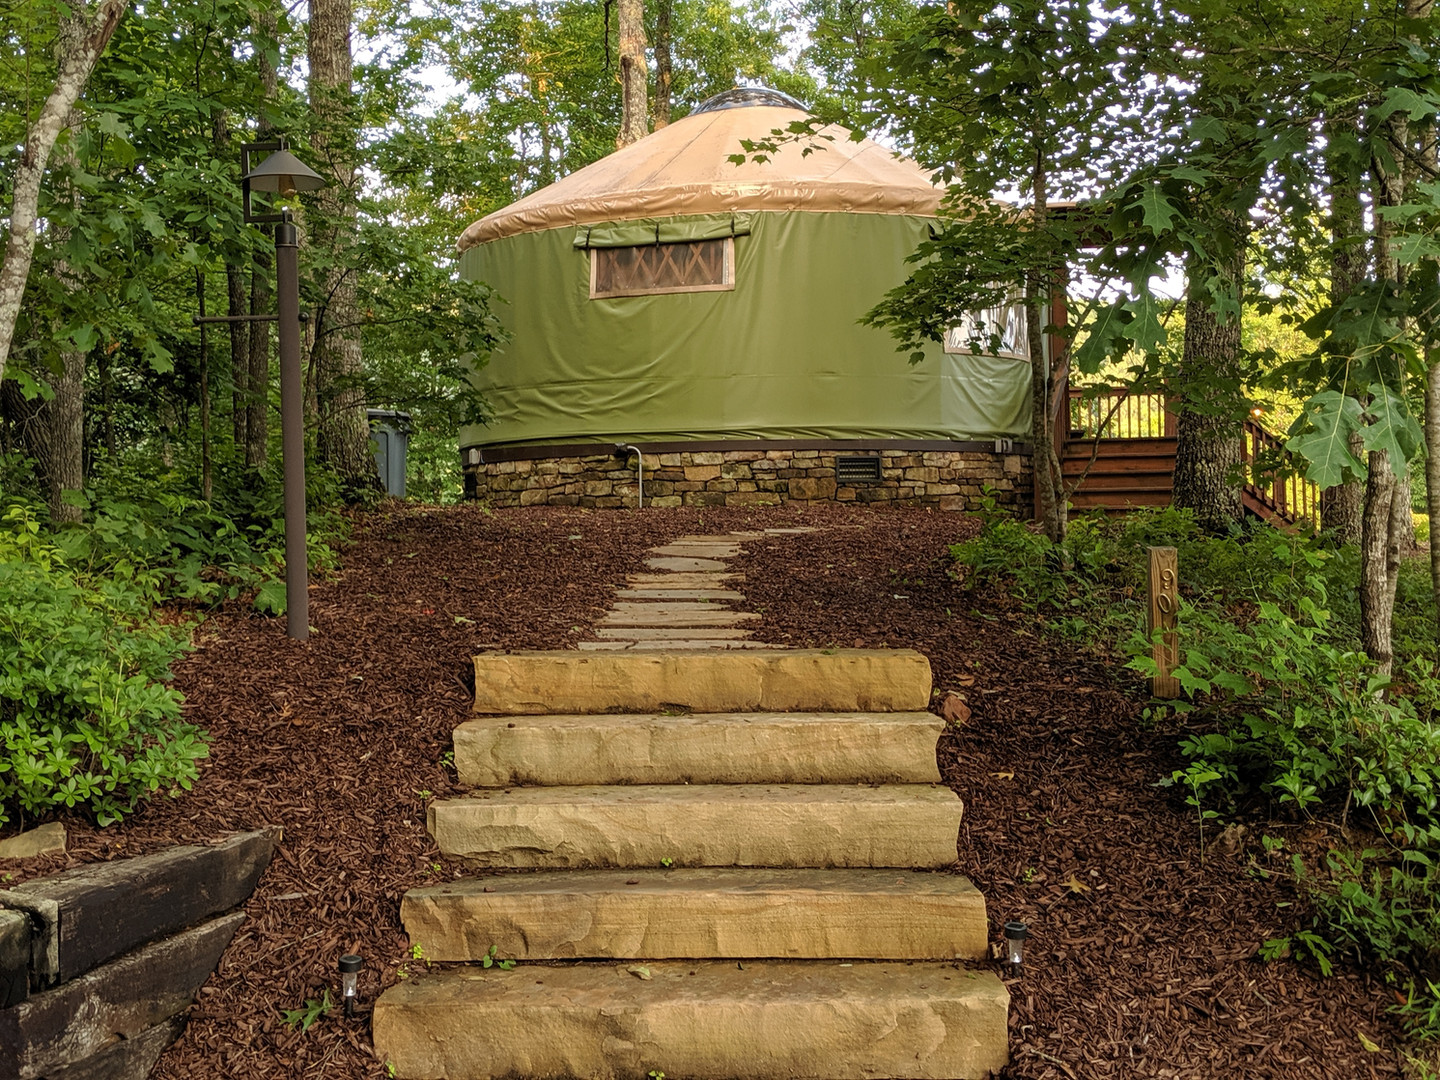 The Cherokee sits highest of all the yurts on the Ridge, and has one of the best views of the expansive Nantahala Gorge.